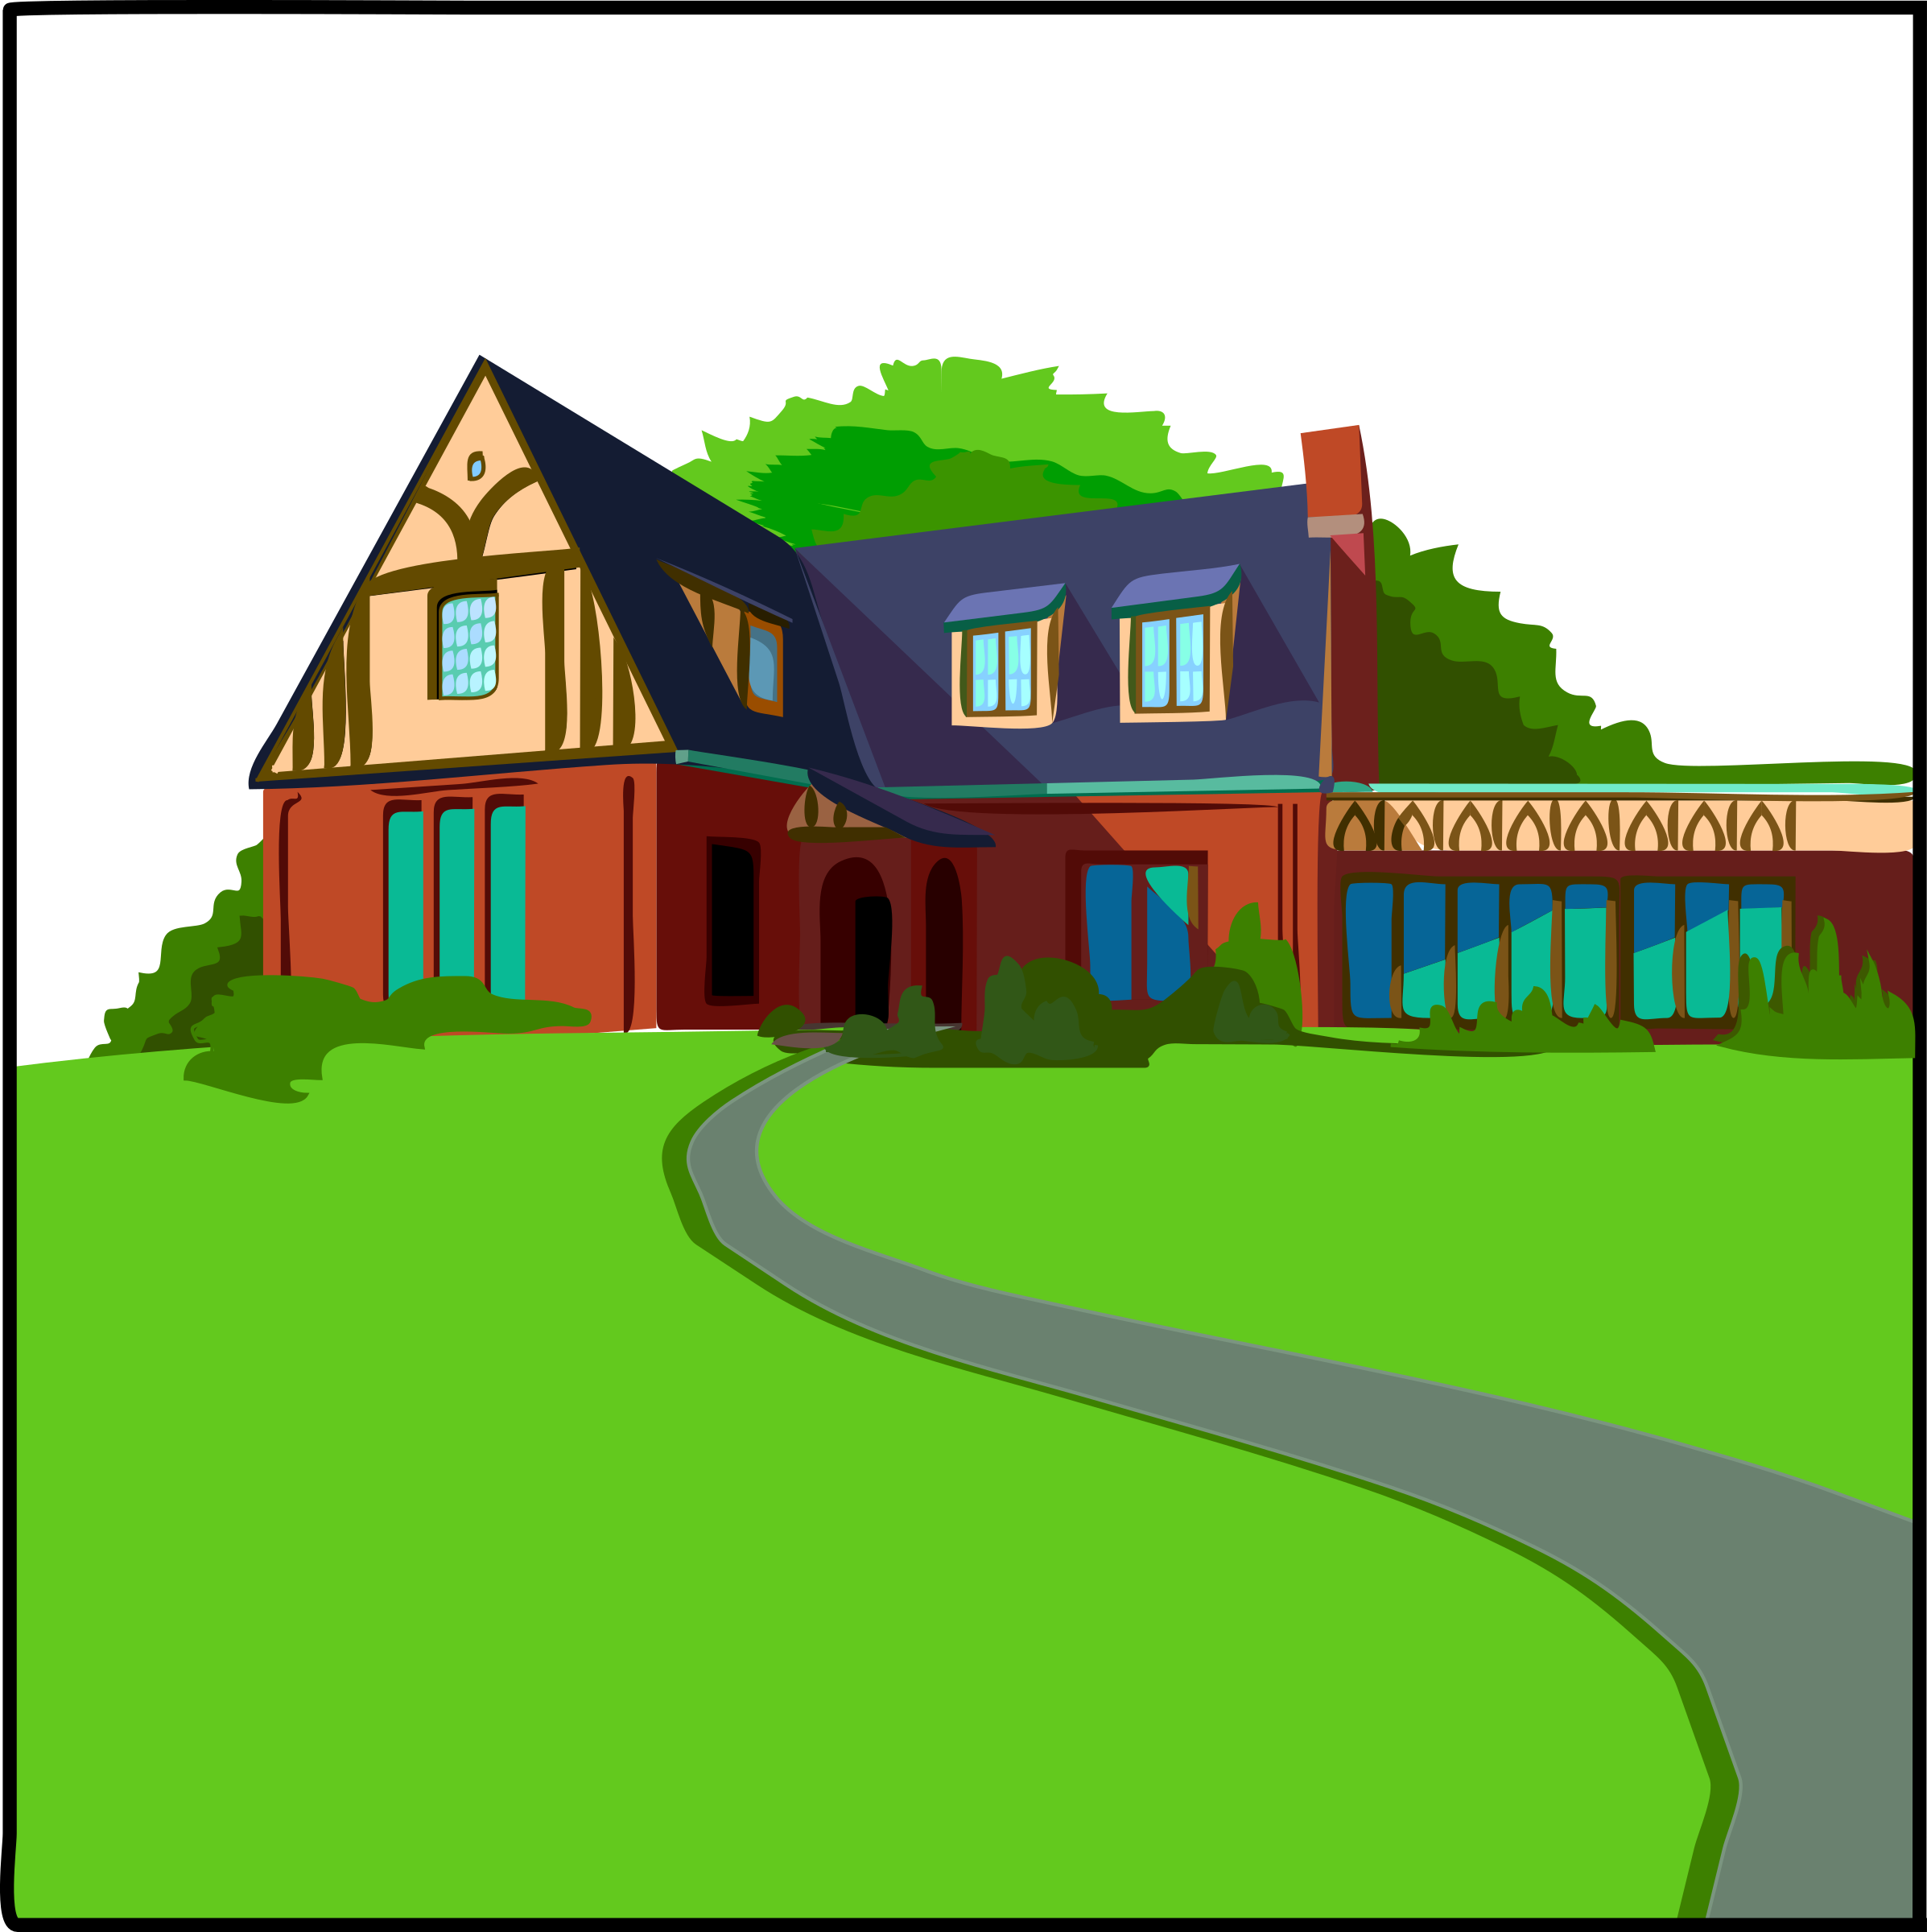 Old house clipart graphic transparent download Clipart - Architetto -- Casa in campagna graphic transparent download